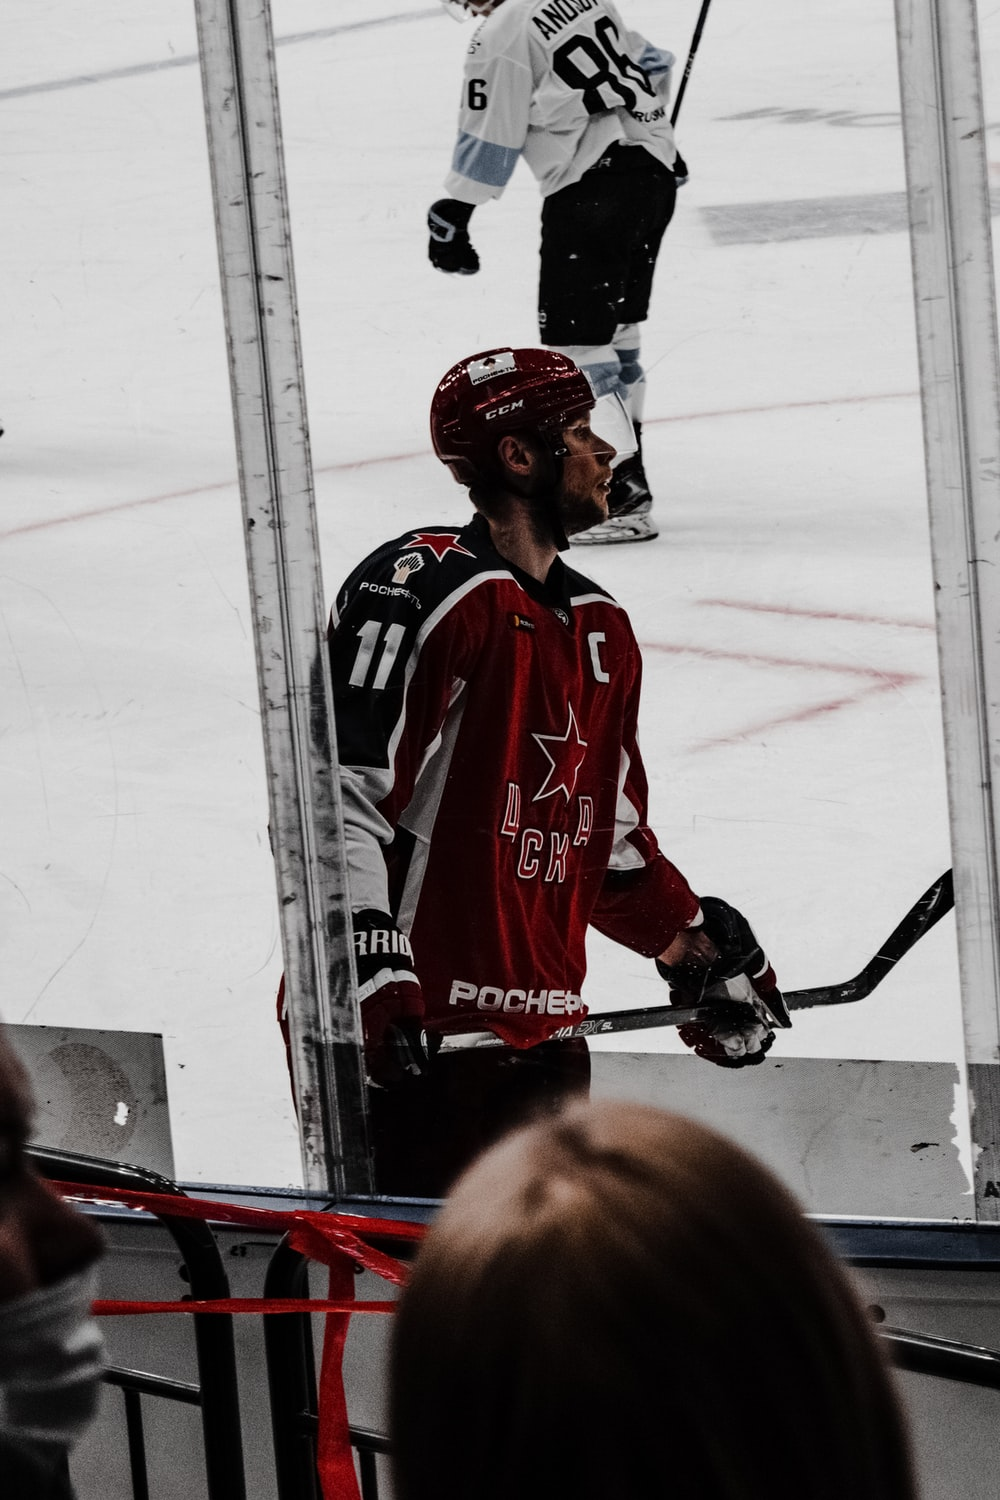 man in red and white jersey shirt playing ice hockey